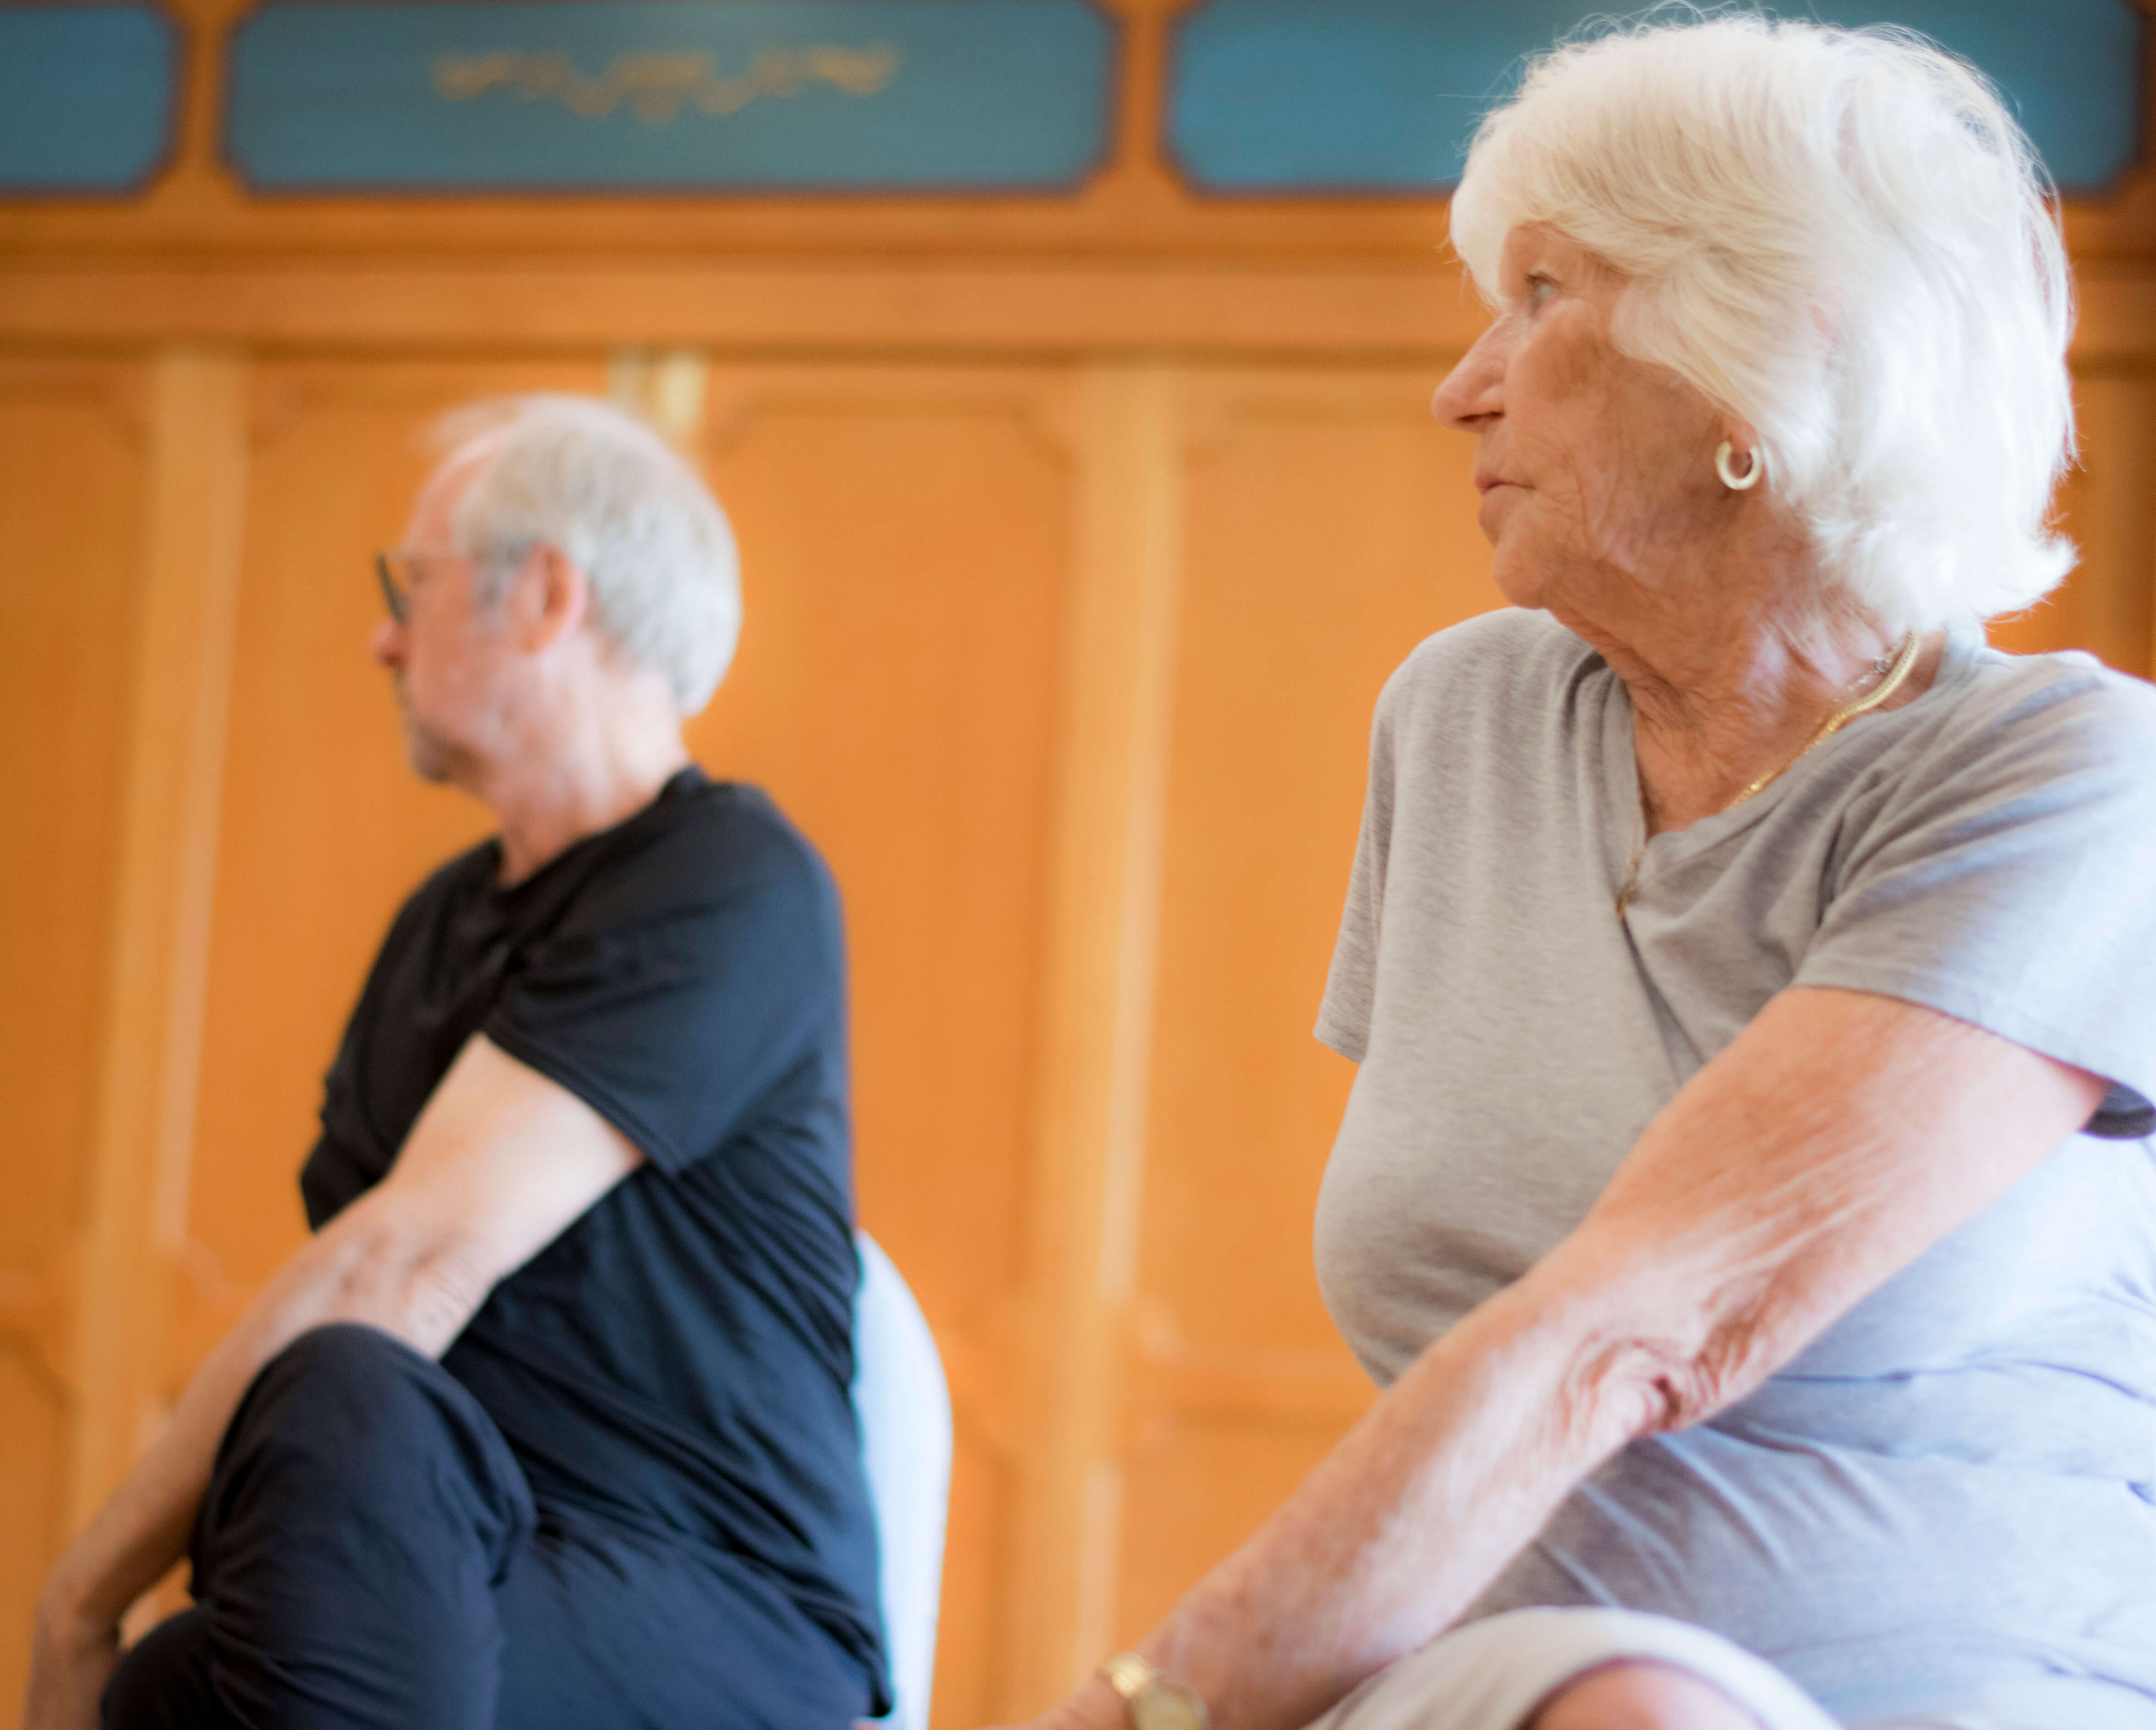 Stretching Exercises for Senior People